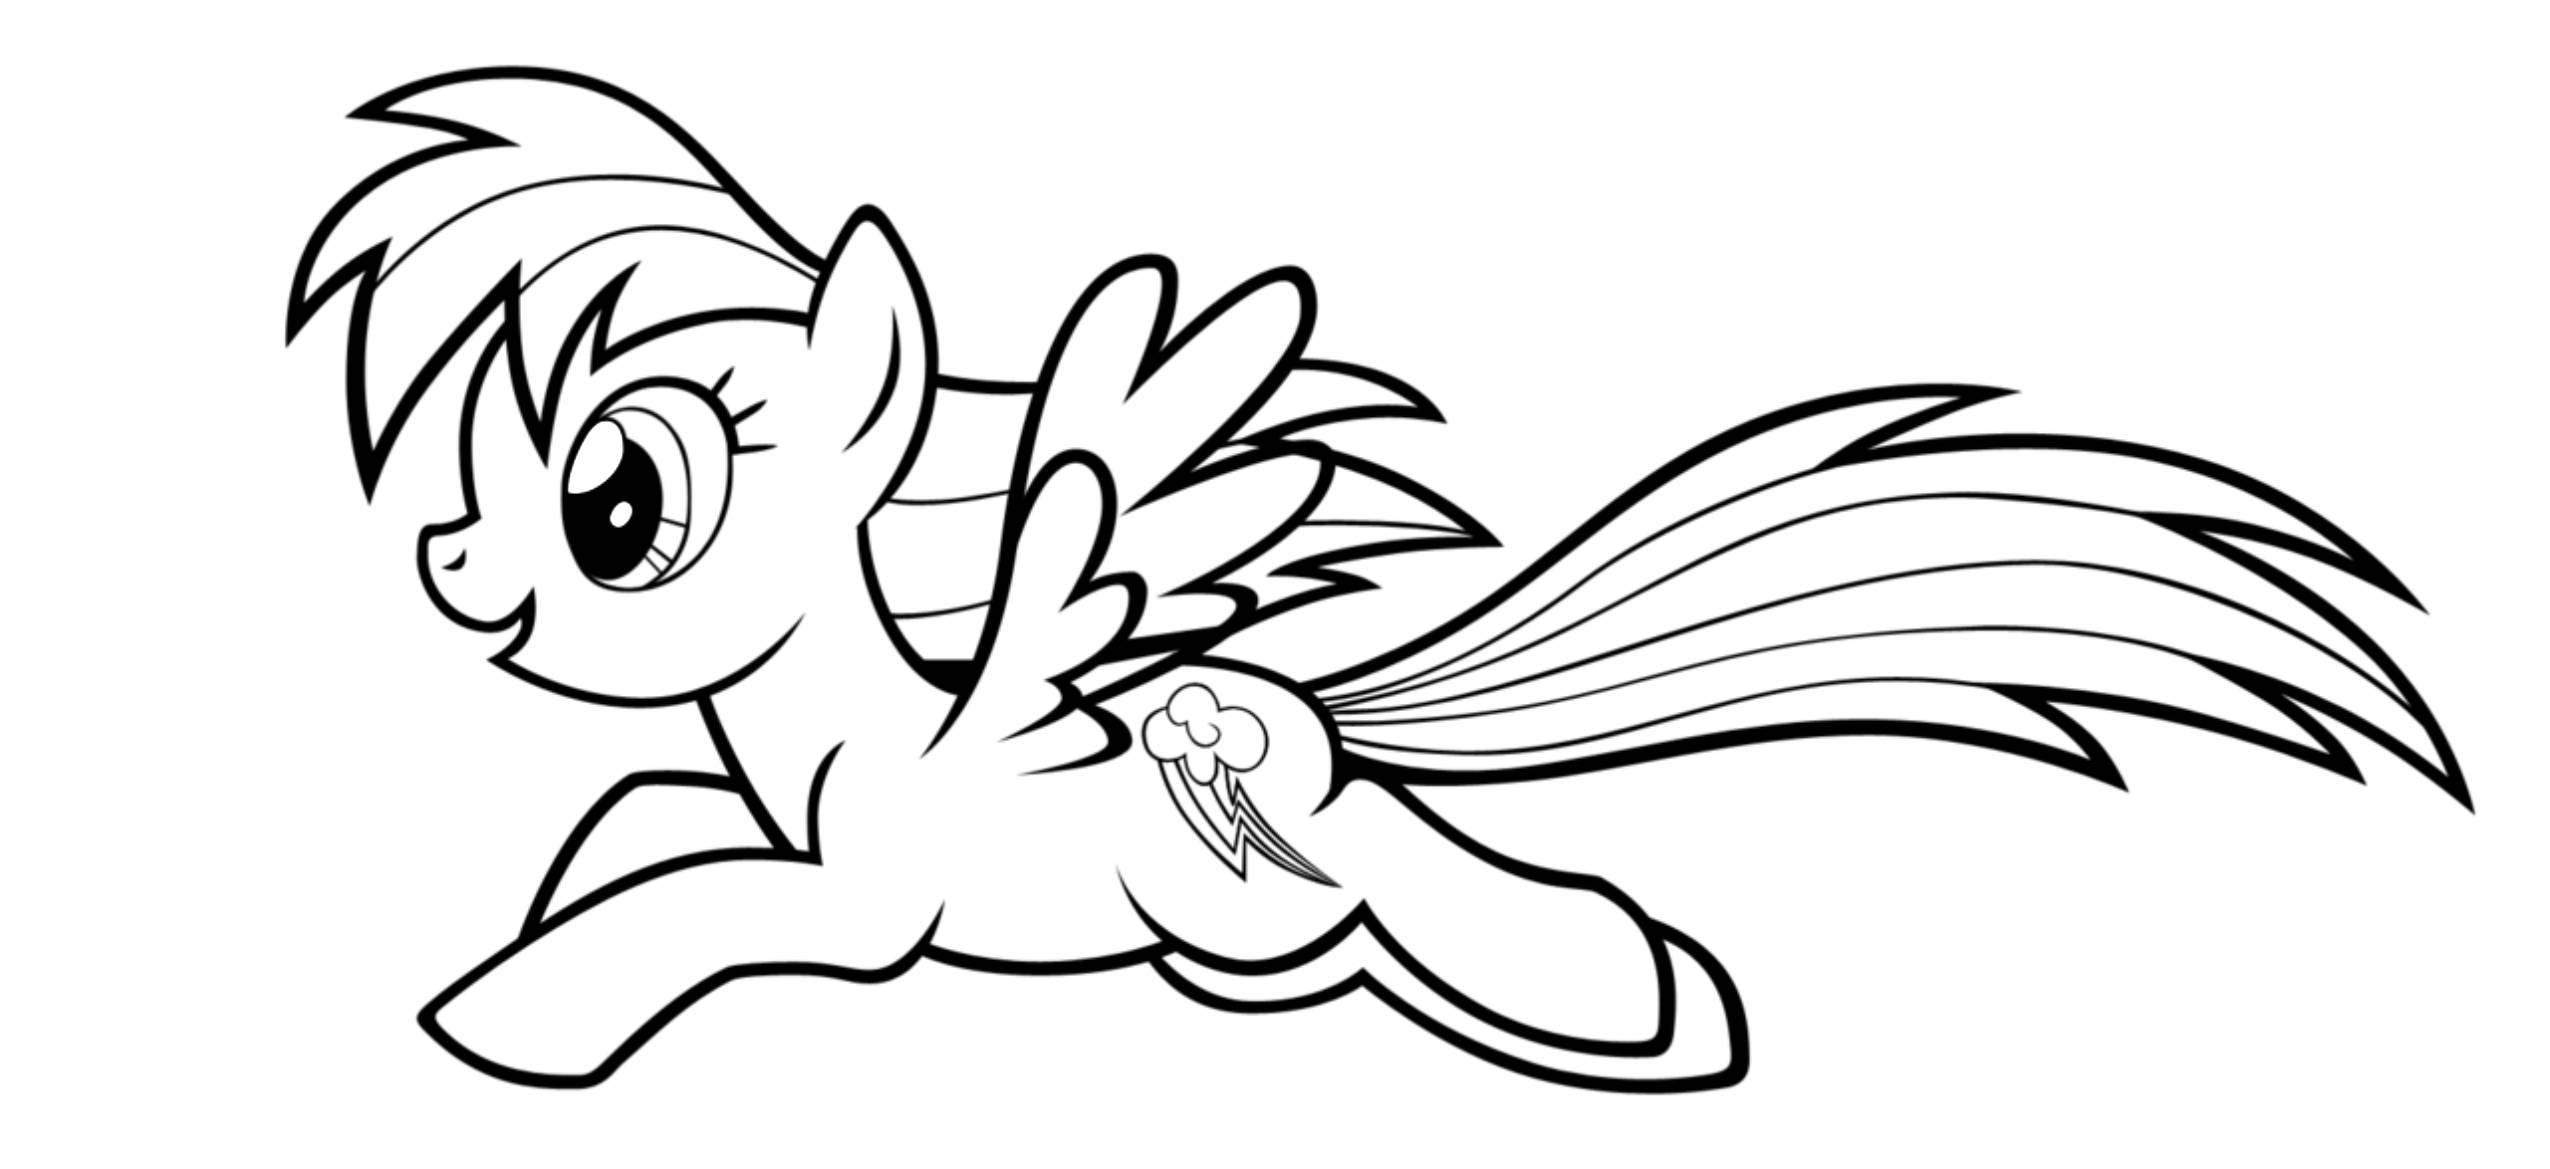 my little pony pictures of rainbow dash print download colorful rainbow dash coloring pages to pictures rainbow of pony little dash my